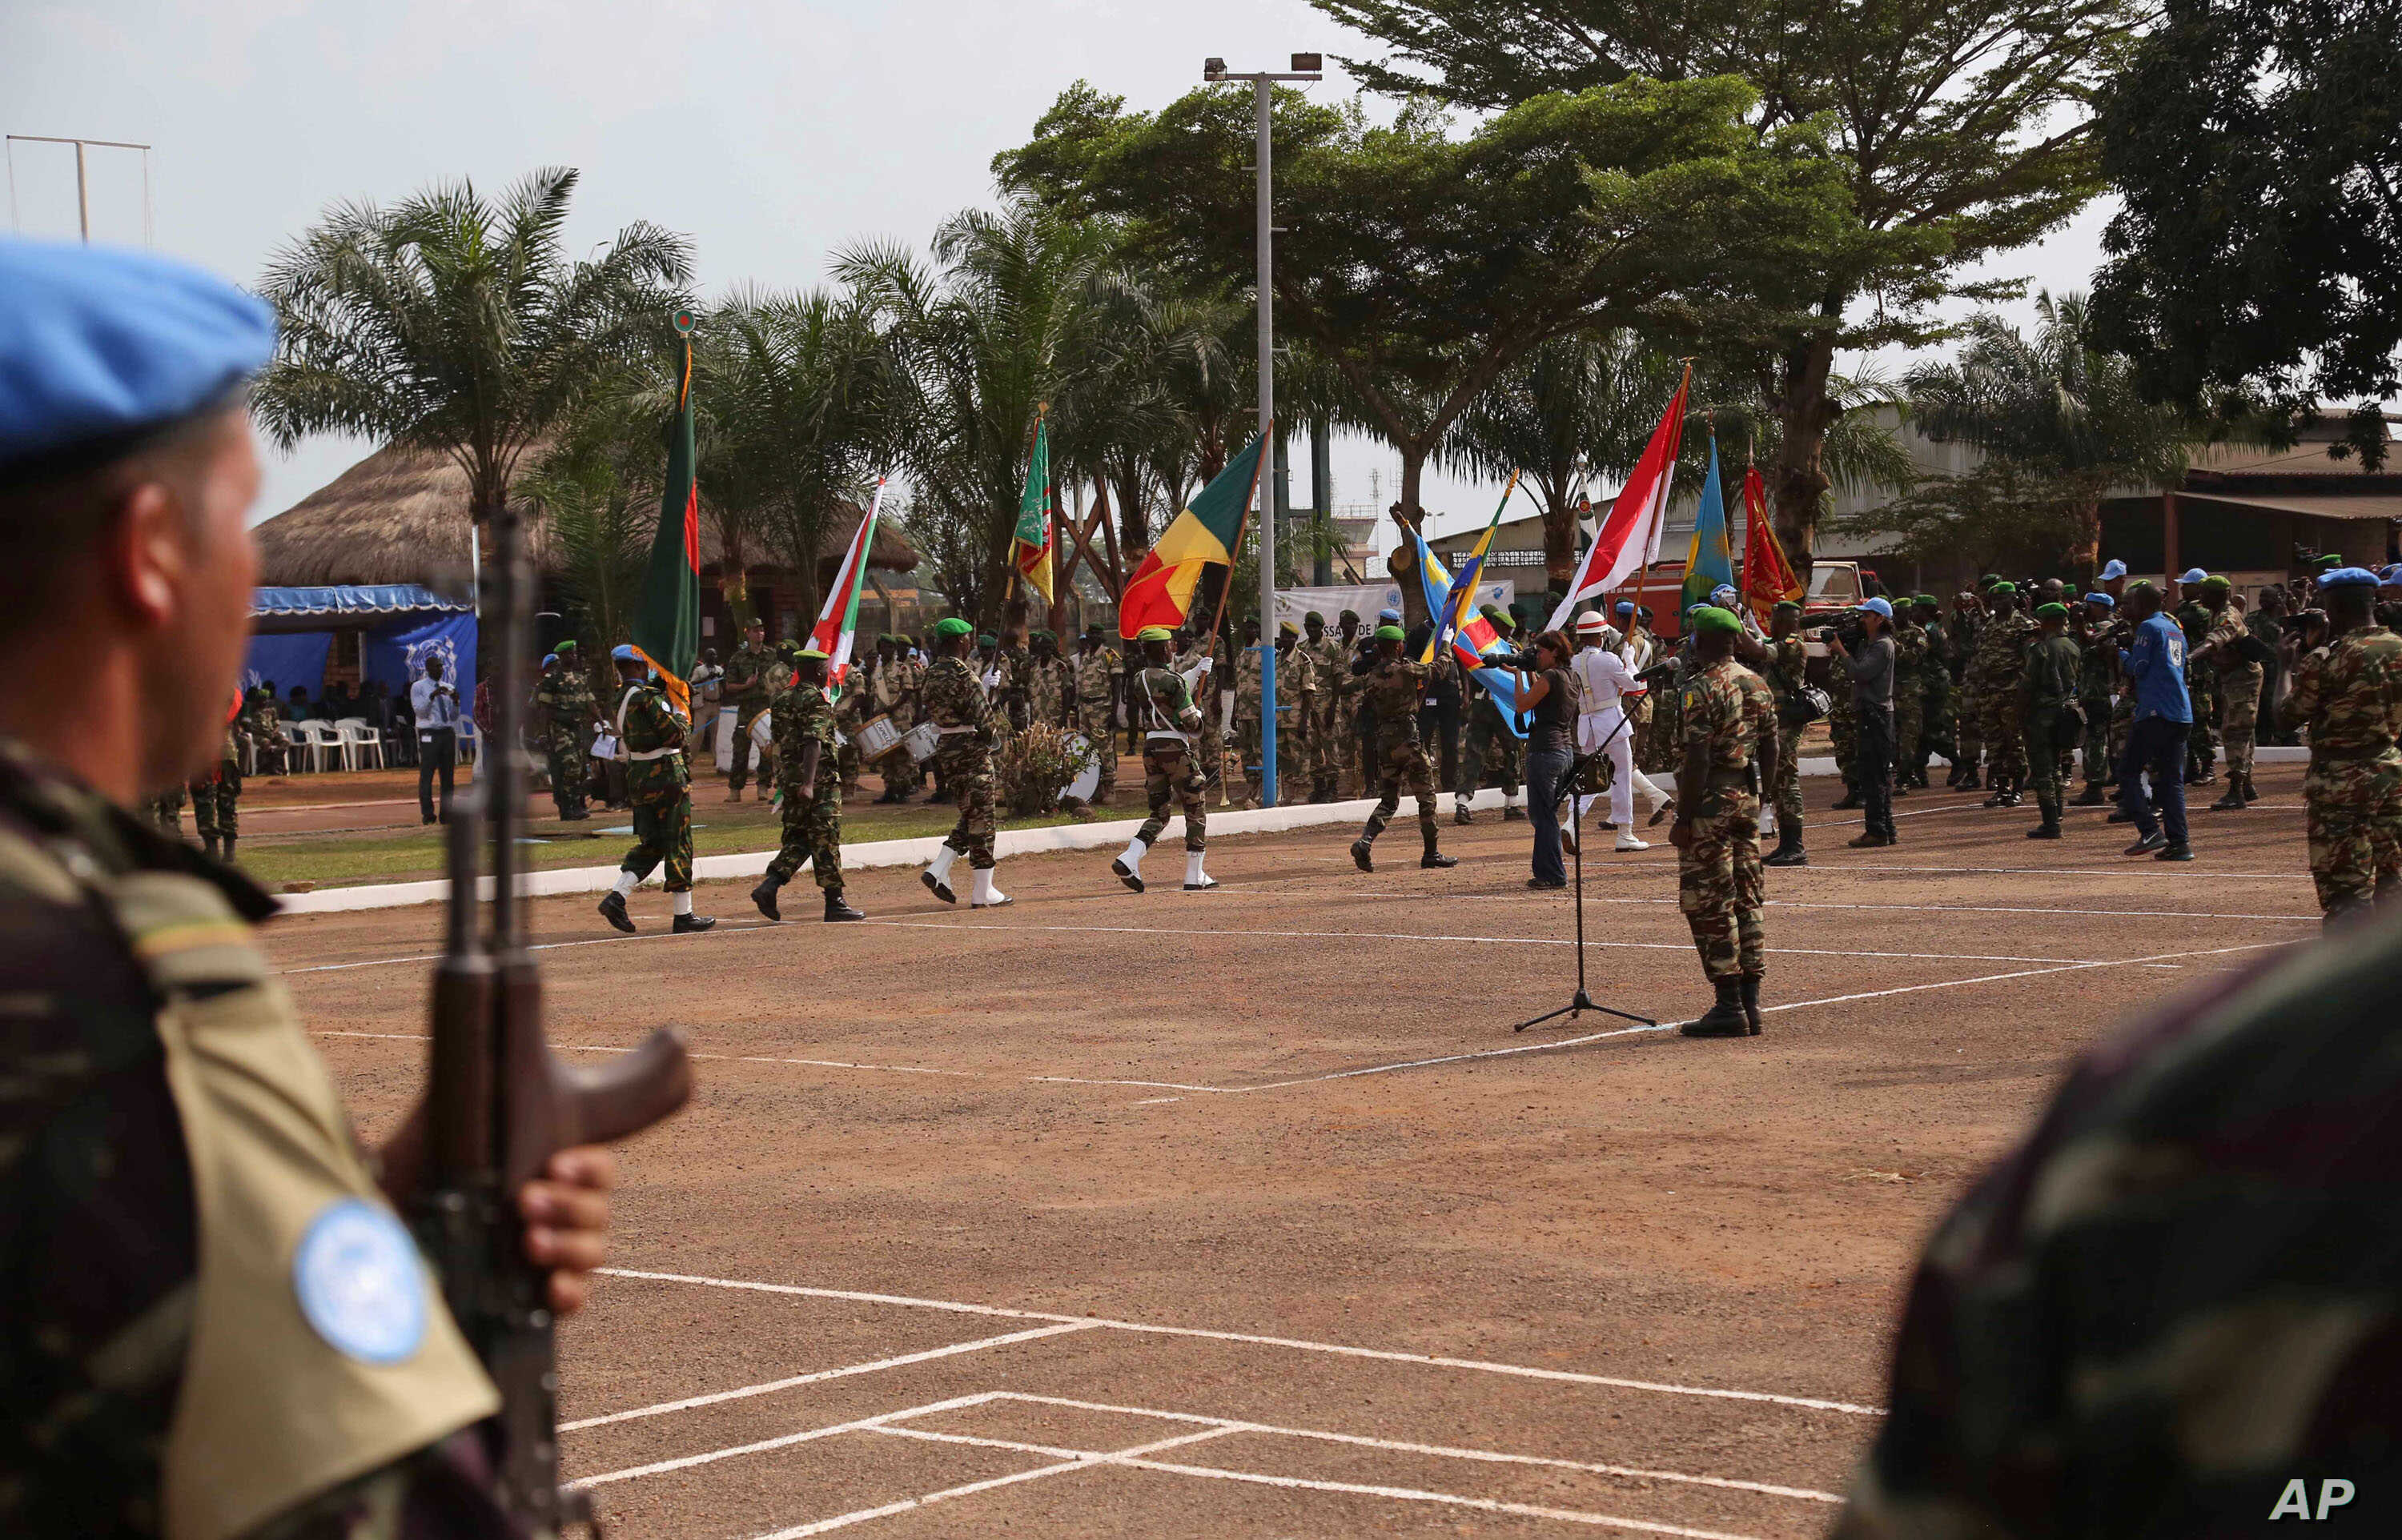 United Nations peace keeping troops take part in a ceremony in the capital city of Bangui, Central African Republic, Sept. 15, 2014.